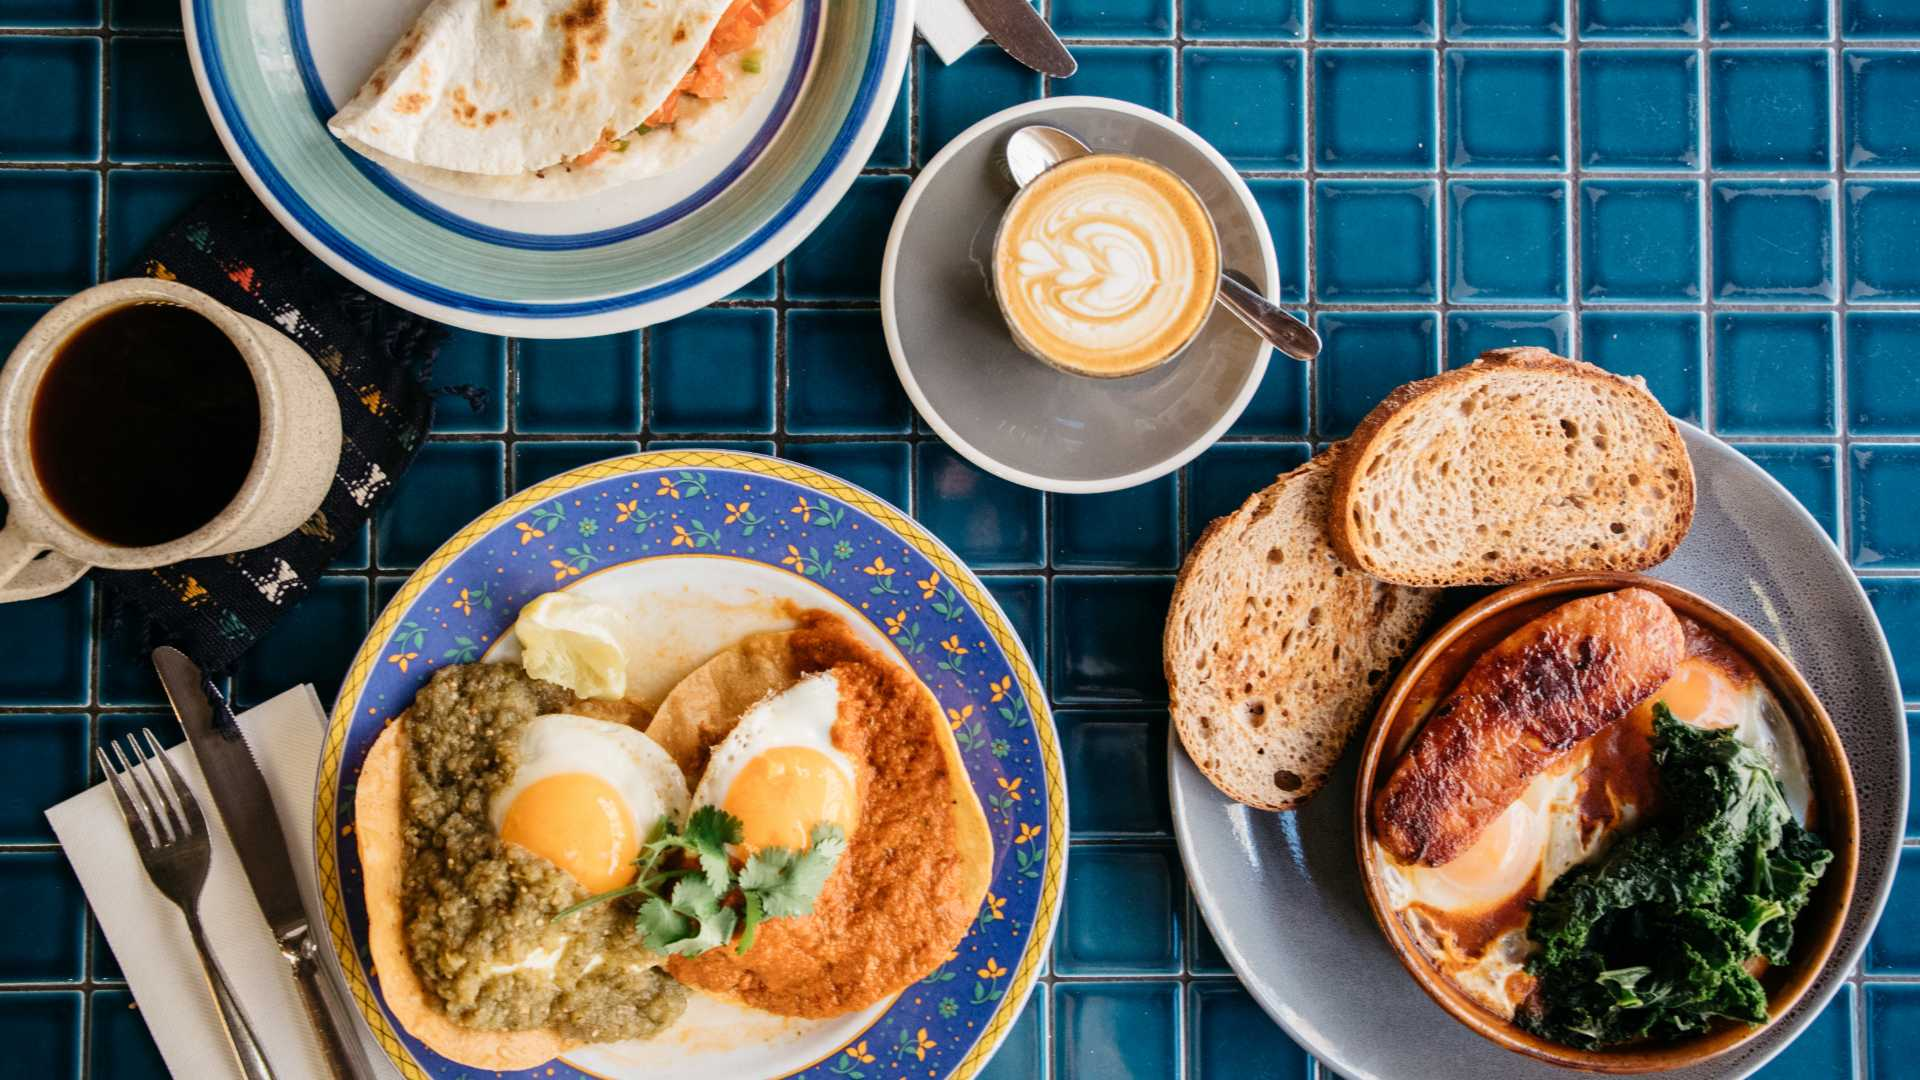 Healthy(ish) Brunch Dishes to Make You Feel Human Again After a Night Out